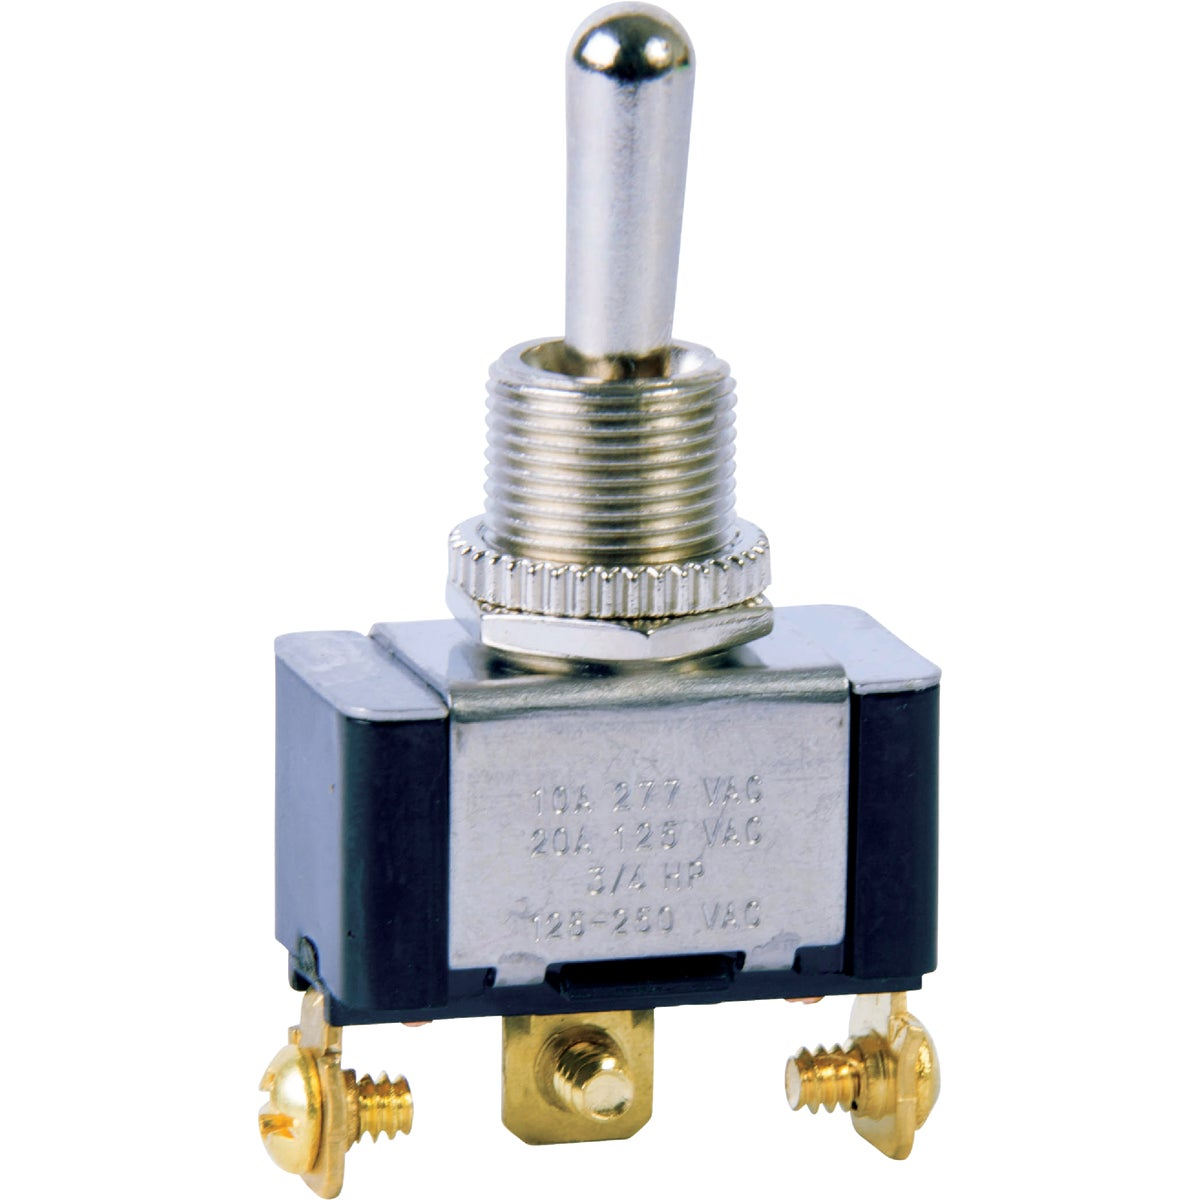 HEAVY DUTY TOGGLE SWITCH - GSW-13 by G B Electrical Inc